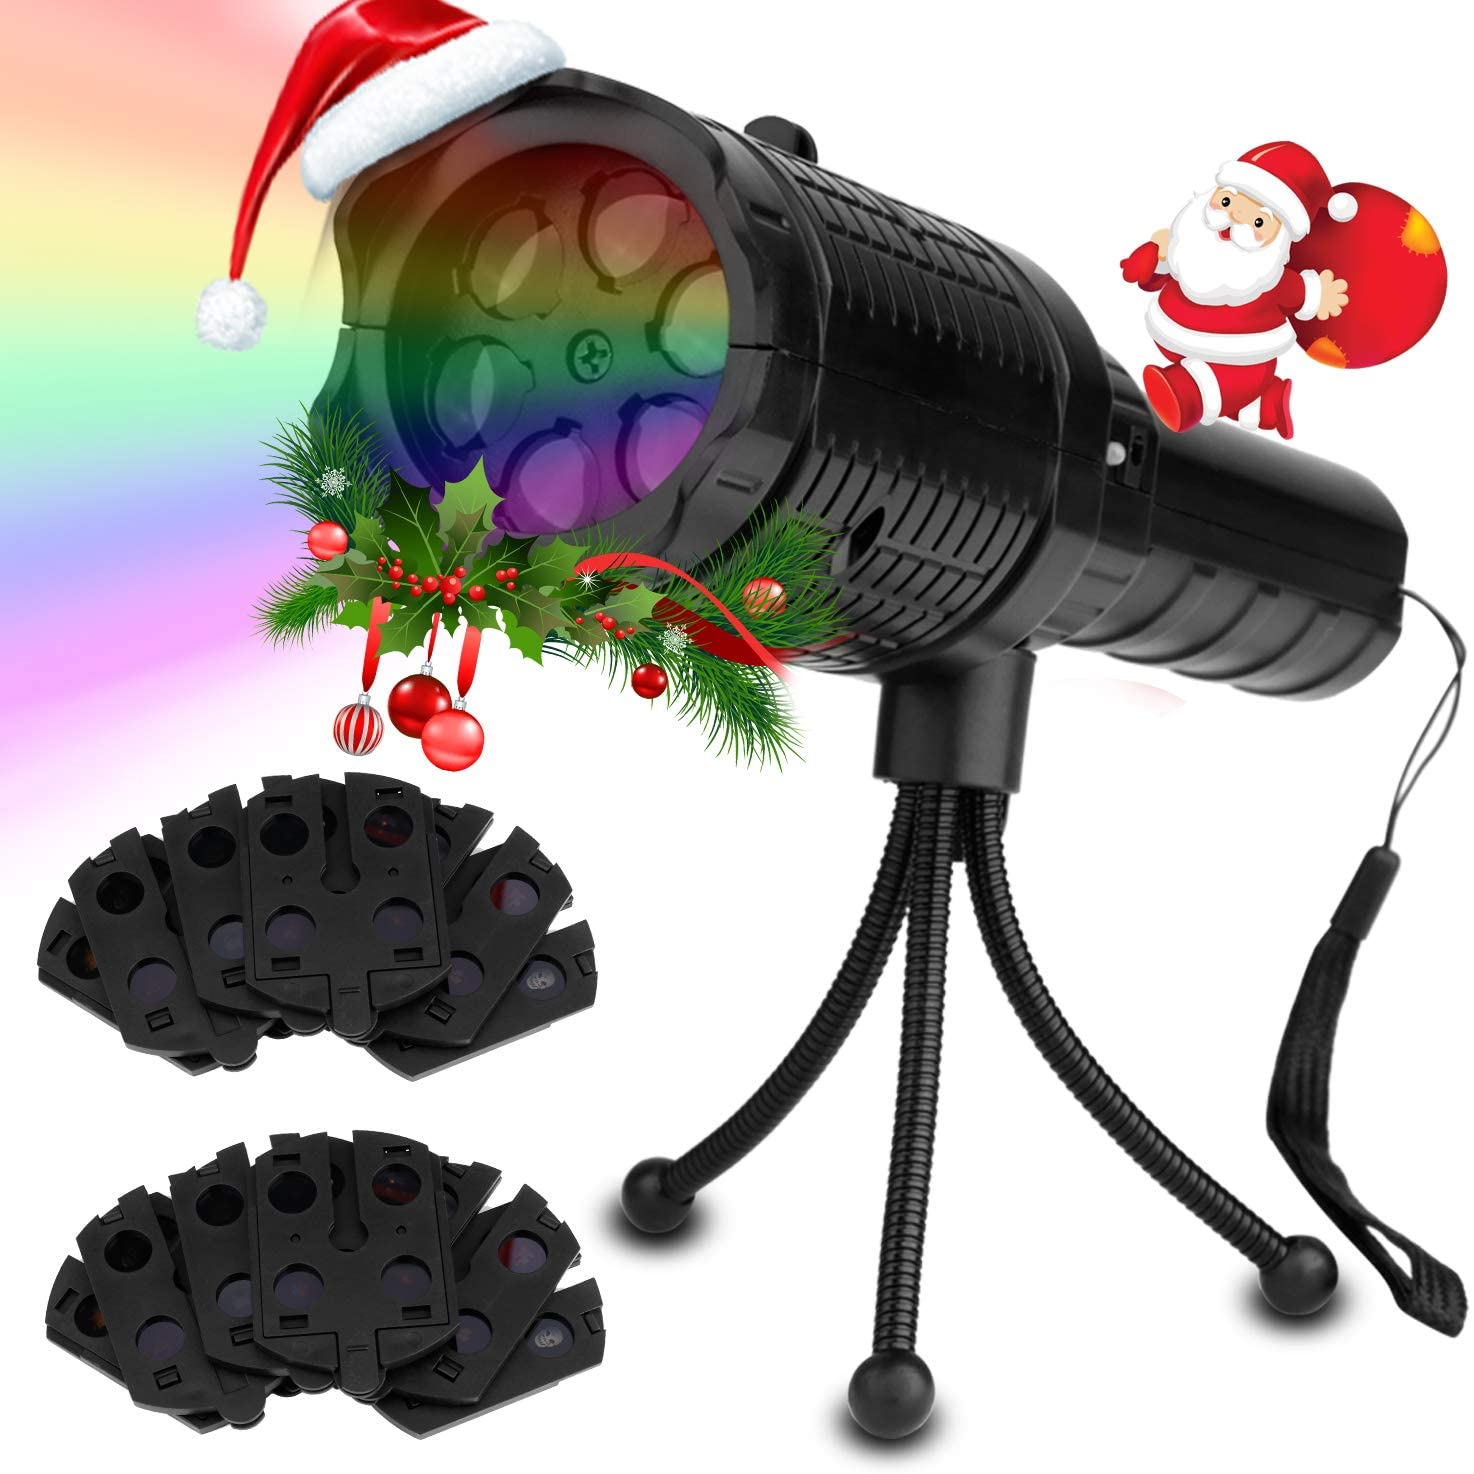 Htwon Handheld Easter Projector Lights, LED Projection Holiday Lights with 12 Pattern Slides and Tripod, Portable 2 in 1 Decoration Light Show & Handheld Flashlight for St. Patrick's Day and Easter